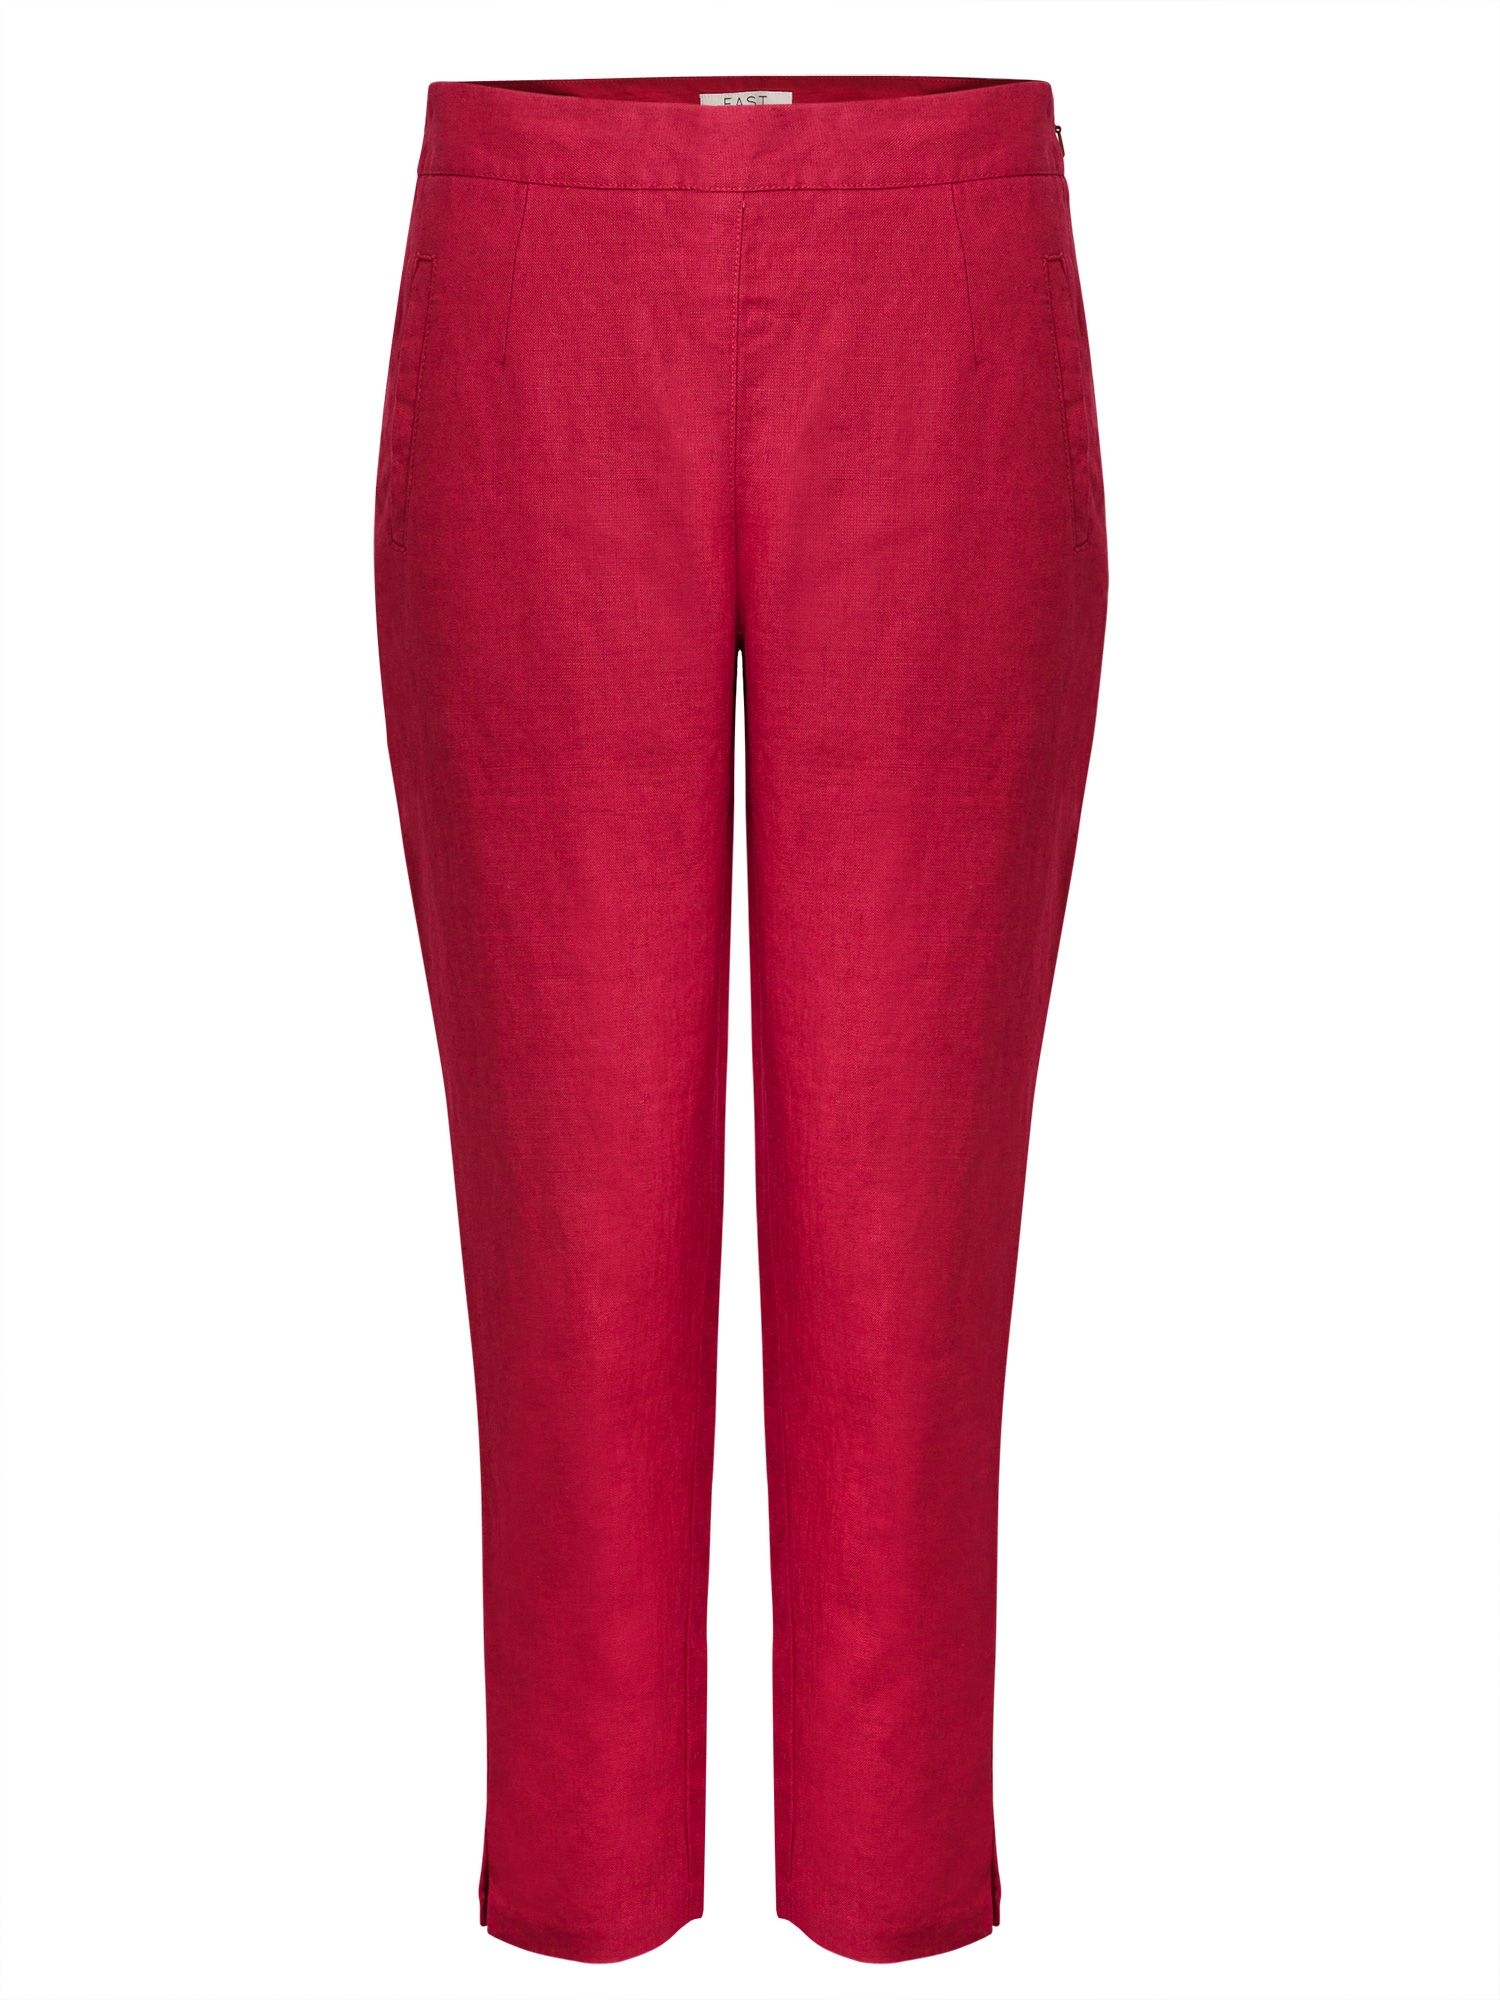 East Linen Capri Trouser, Red